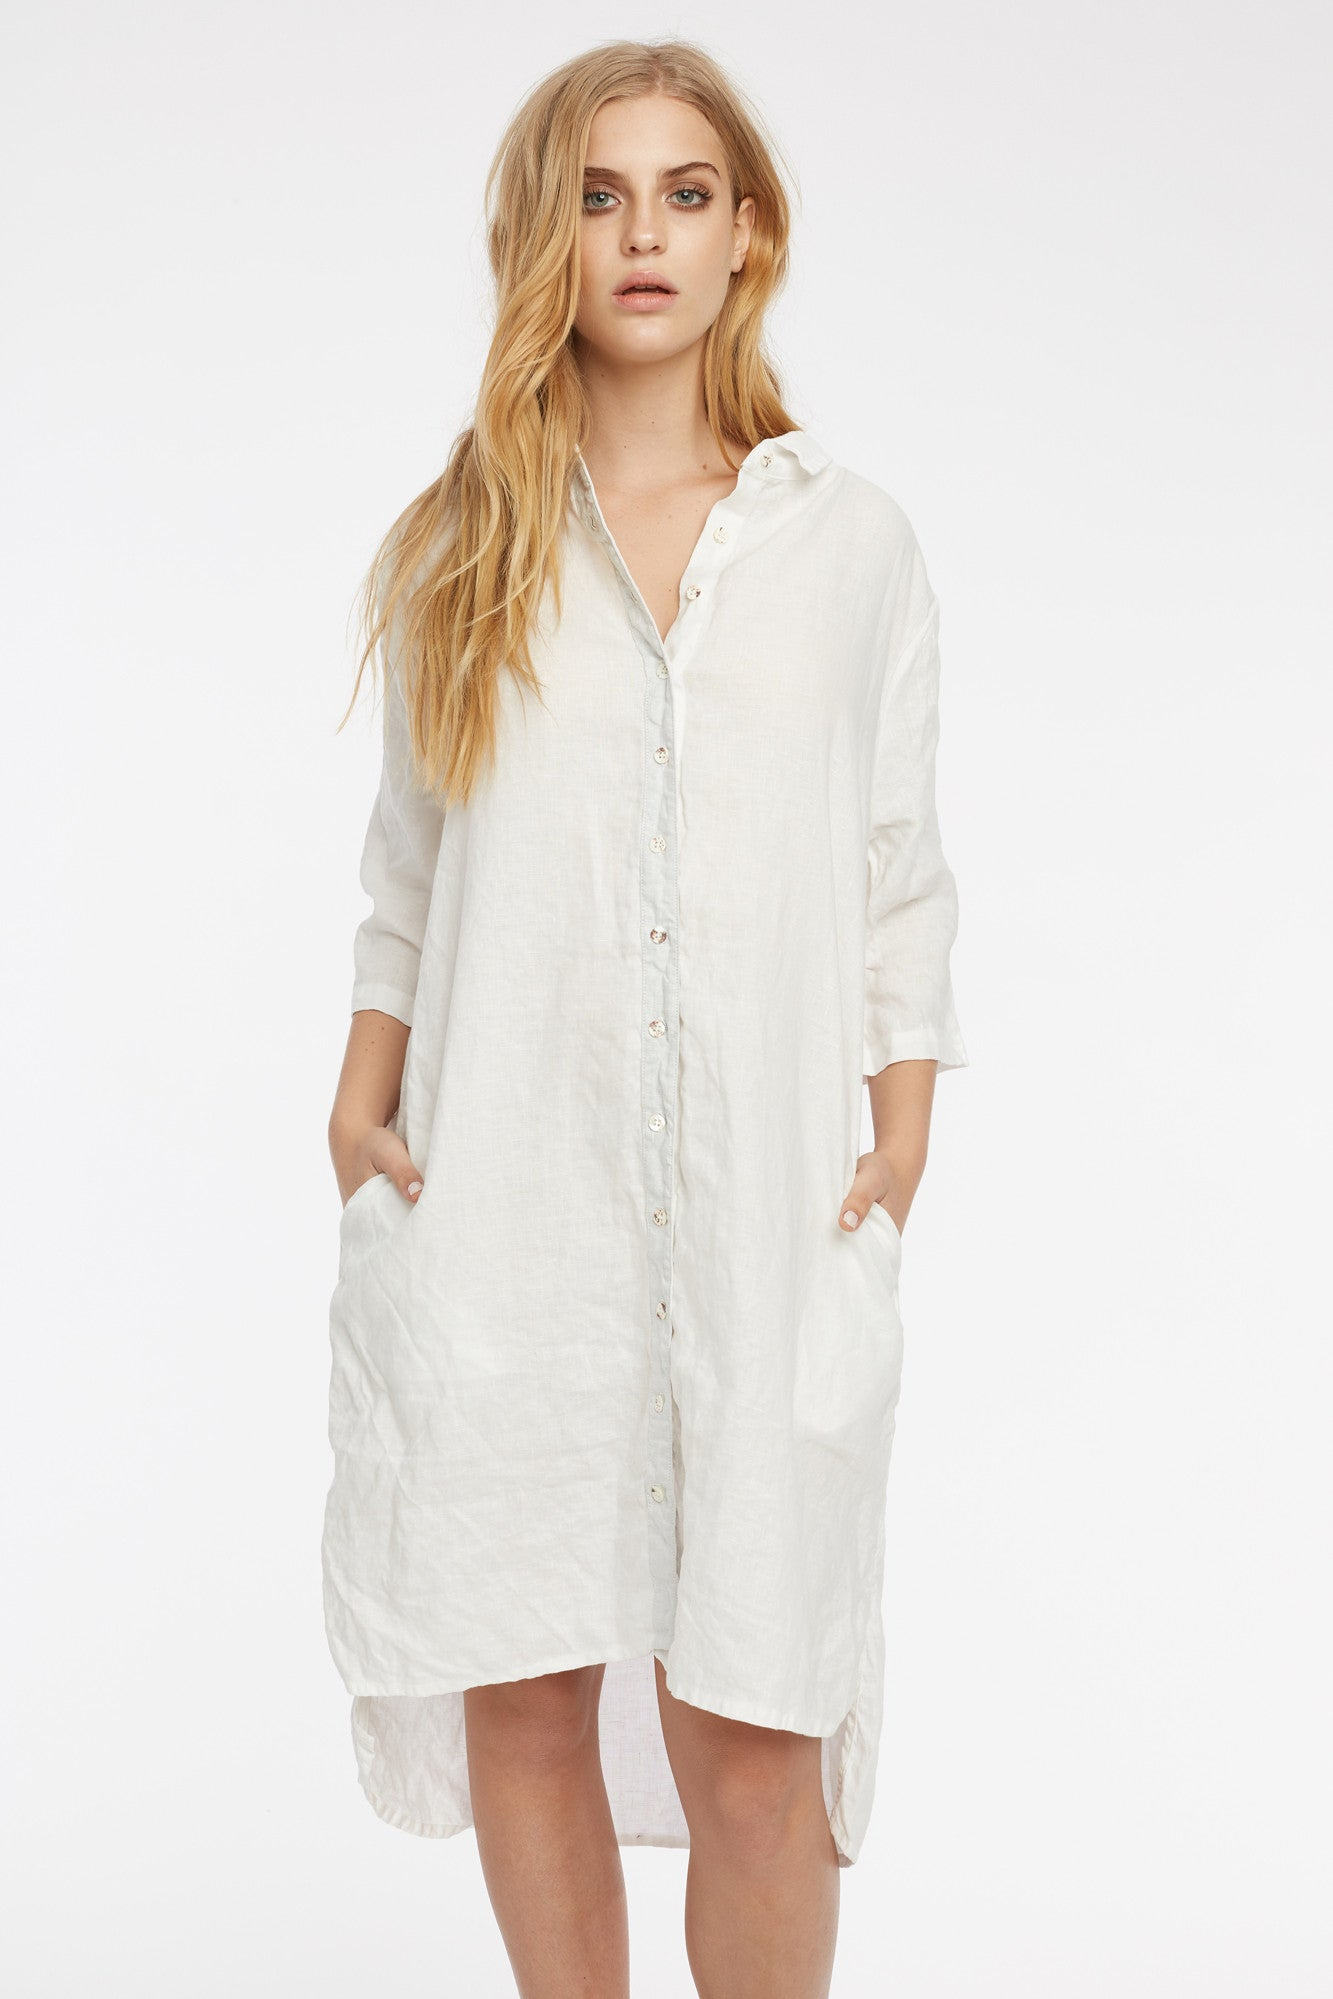 LIN SHIRT DRESS - BLANC